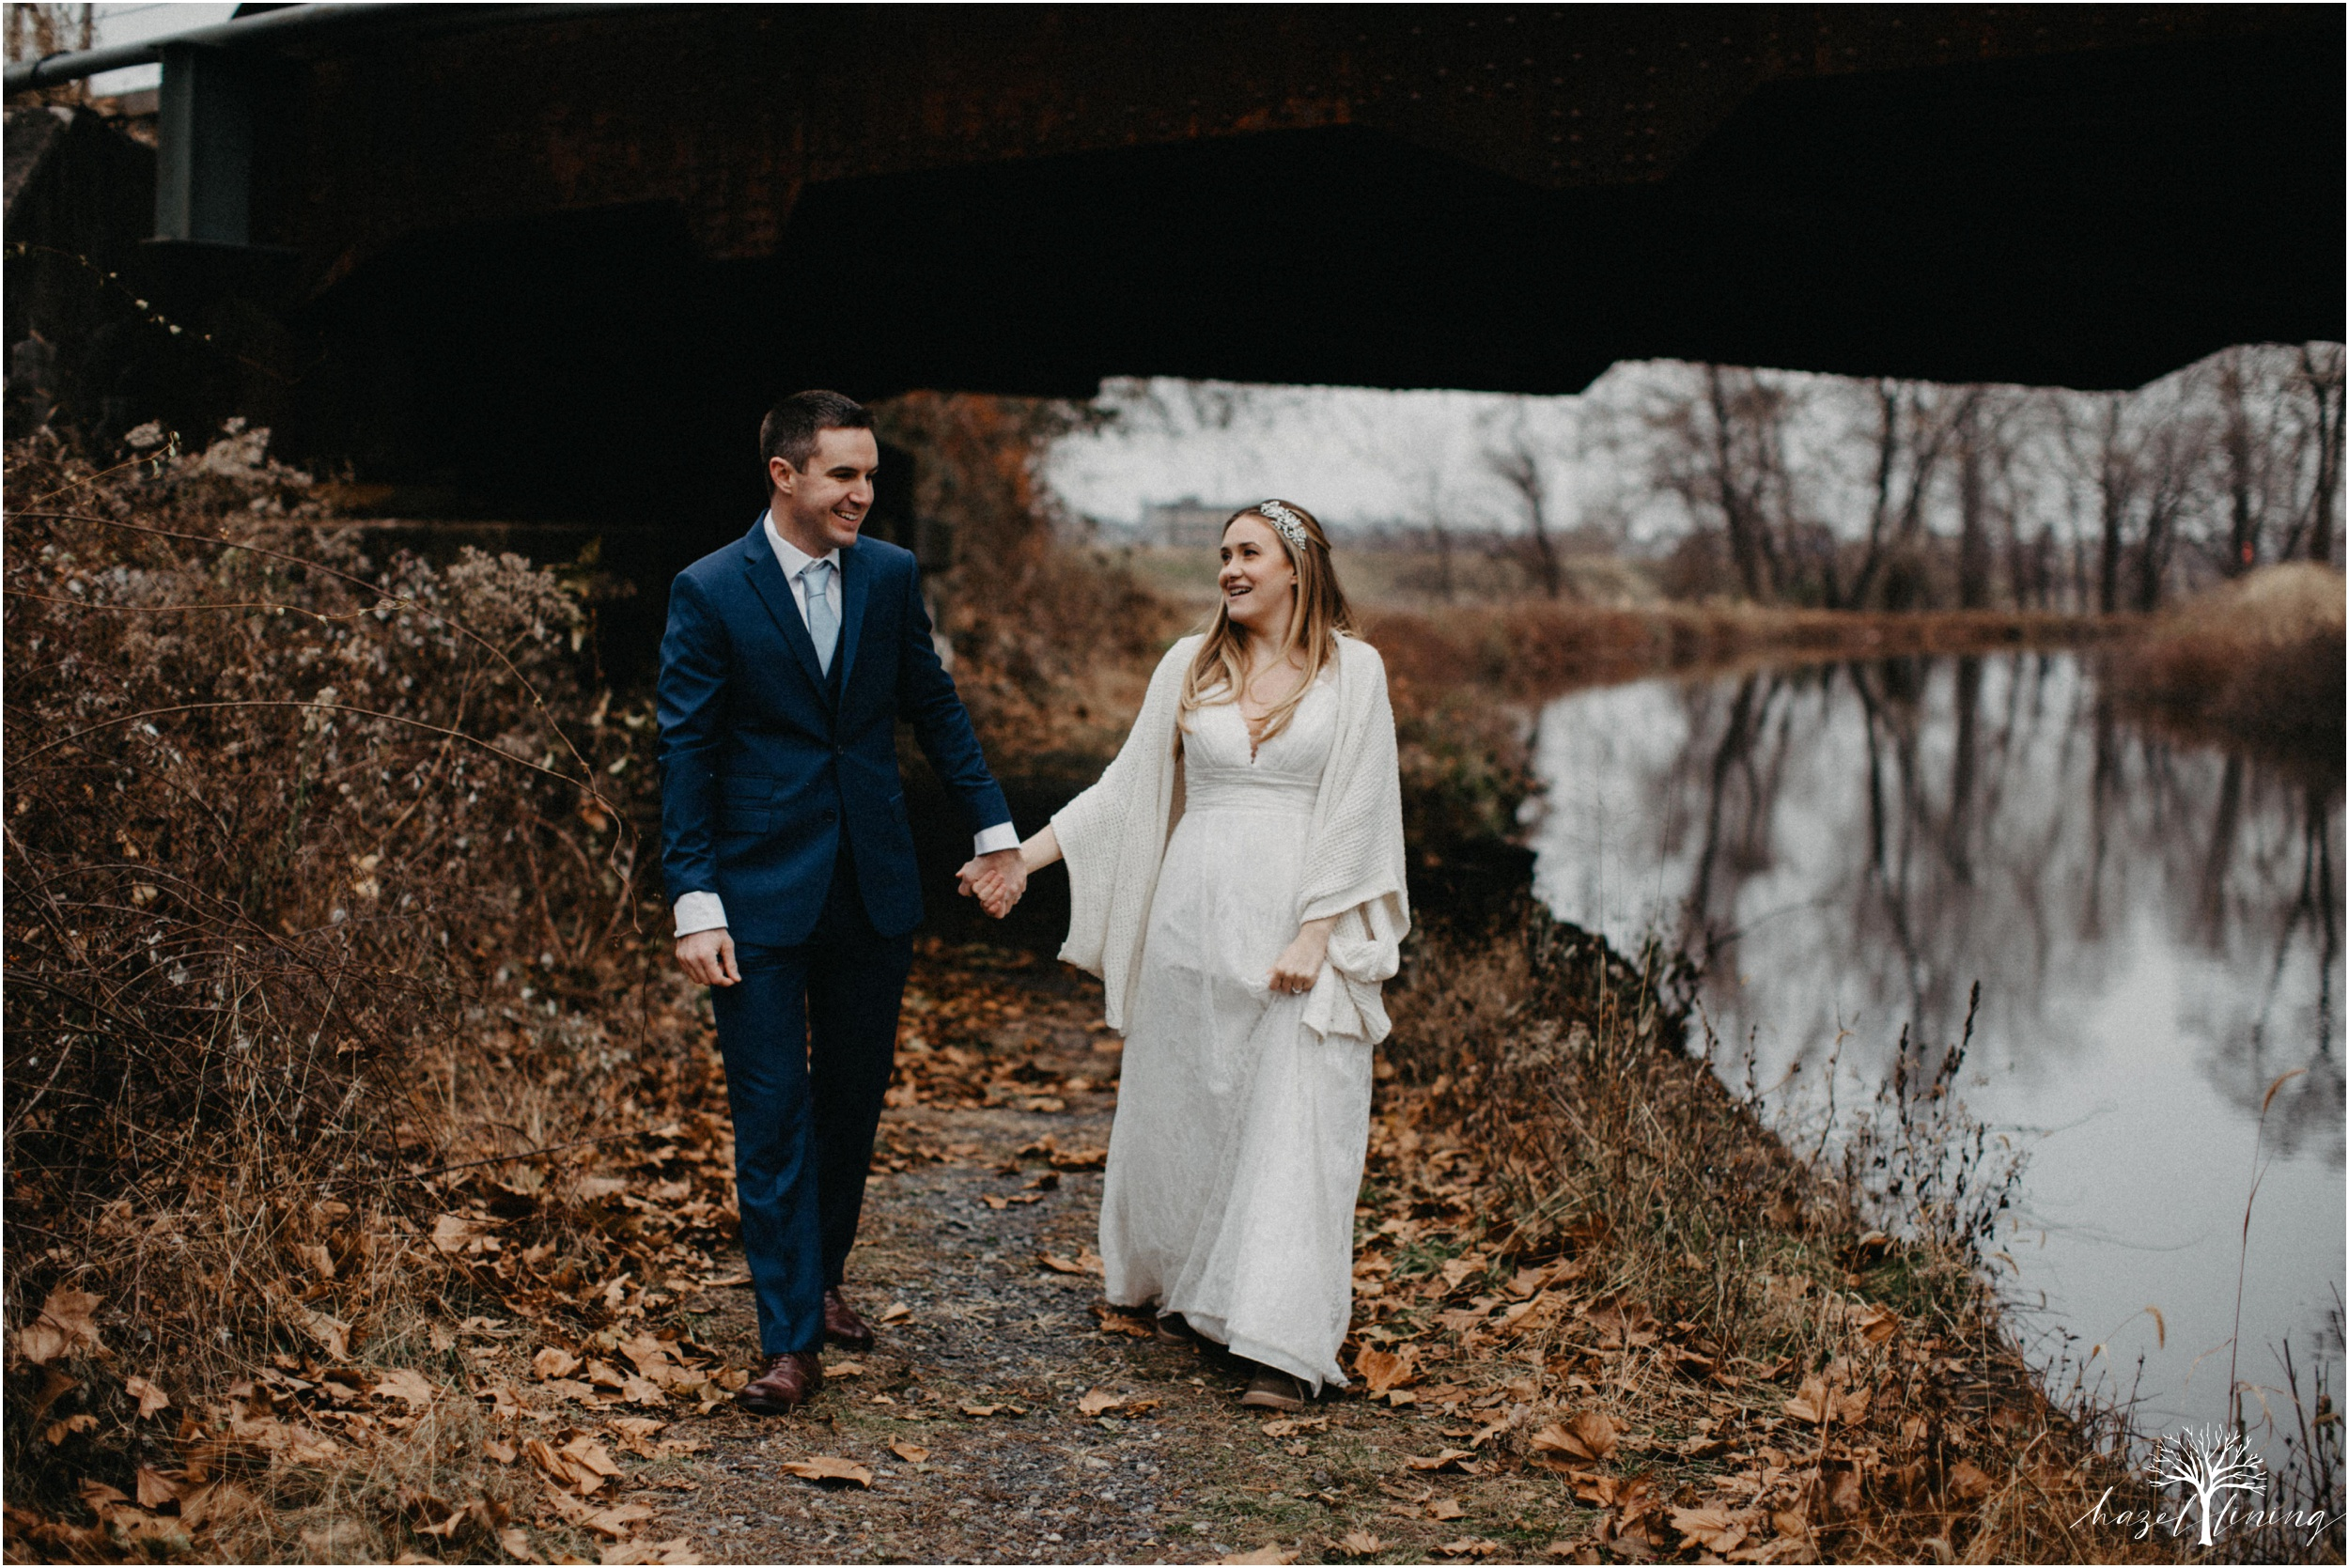 emily-pulham-paul-vincent-london-to-allentown-pa-railway-wedding-portraits_0022.jpg